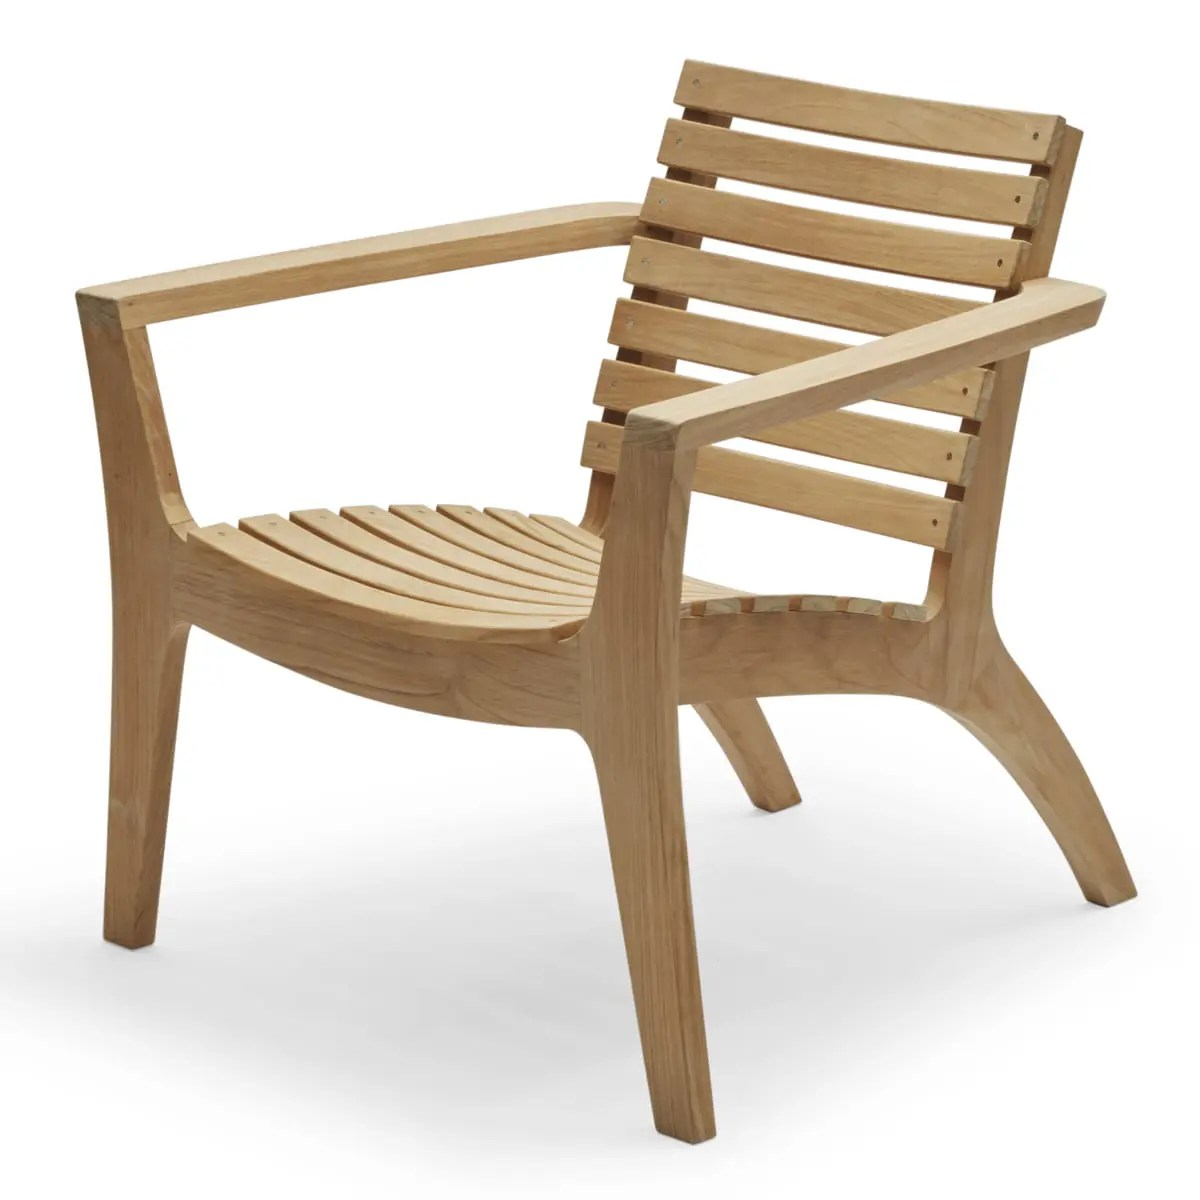 patio furniture cleaning care guide